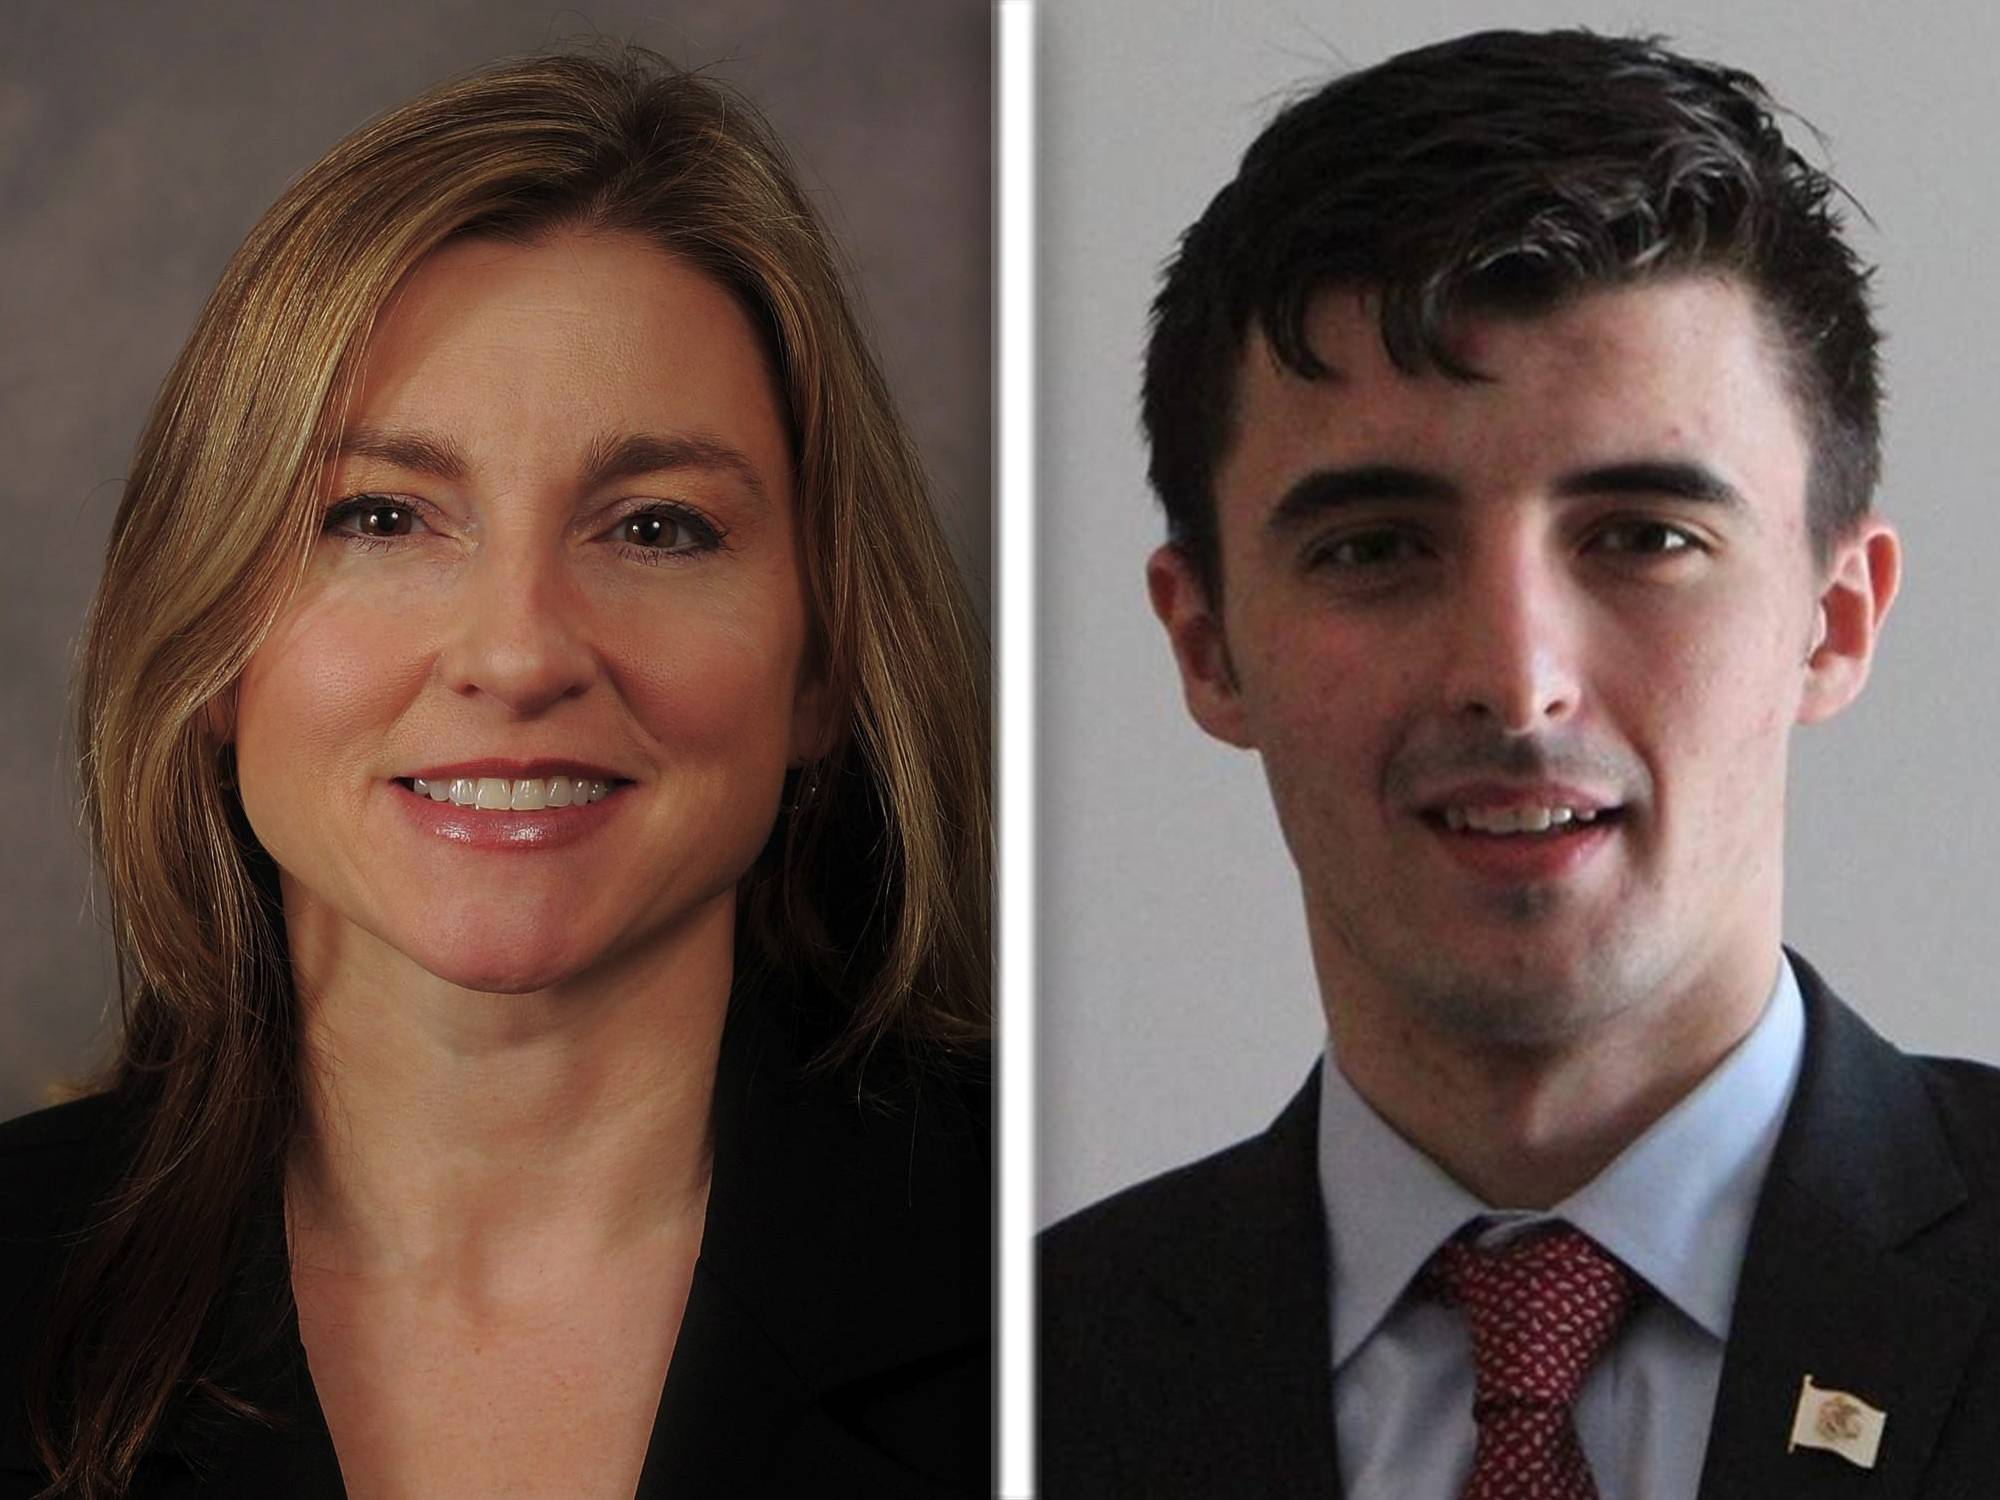 Karen Feldman and Marko Sukovic are Republican candidates for the 59th state House district seat.